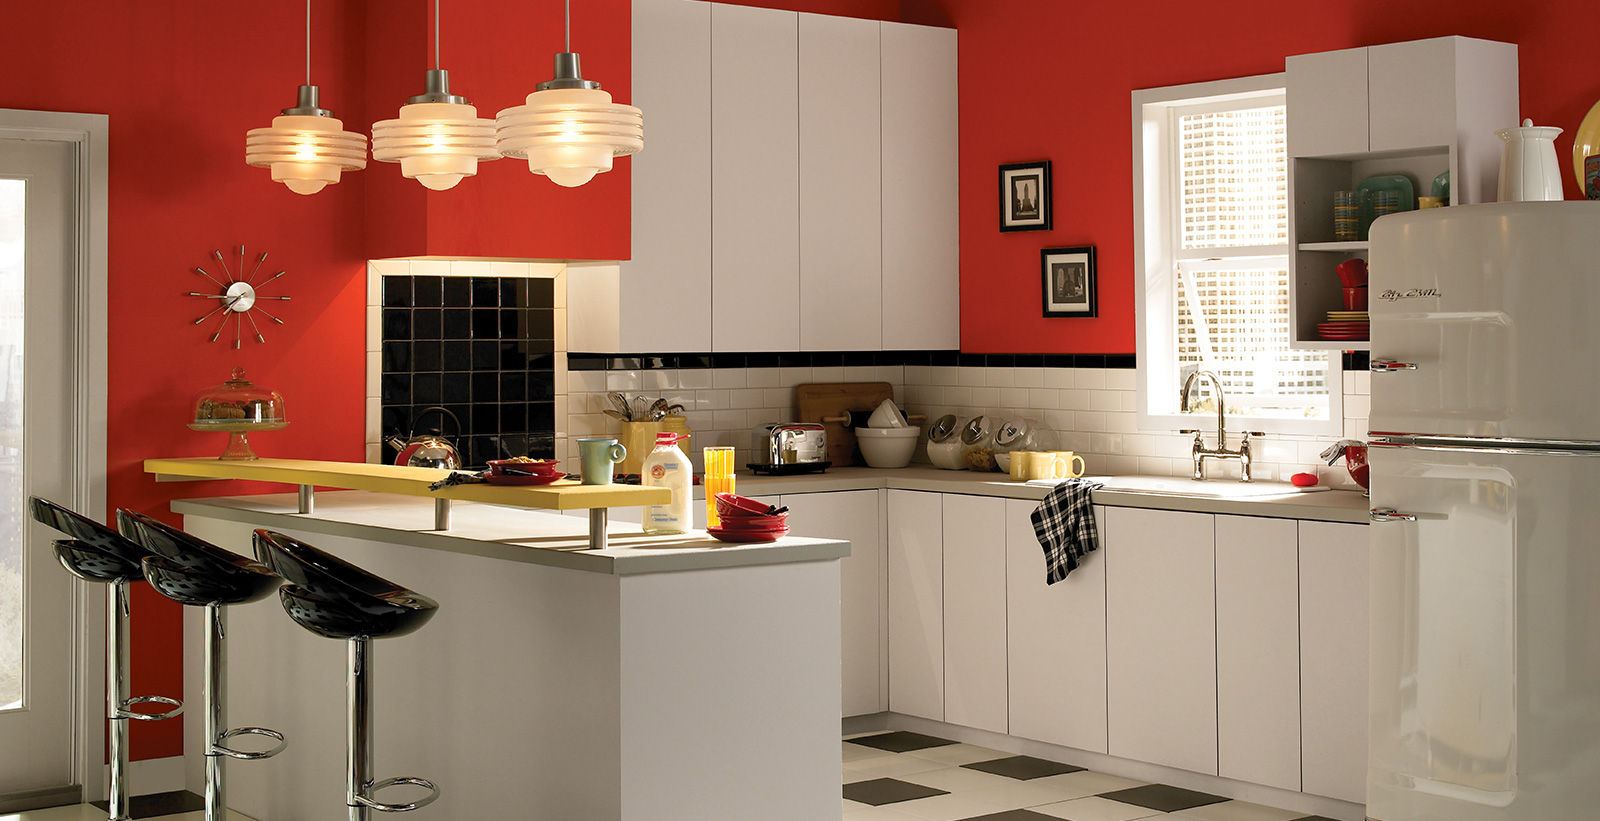 Retro styled kitchen with red on walls, white on cabinets and trim, and white and black checkered flooring